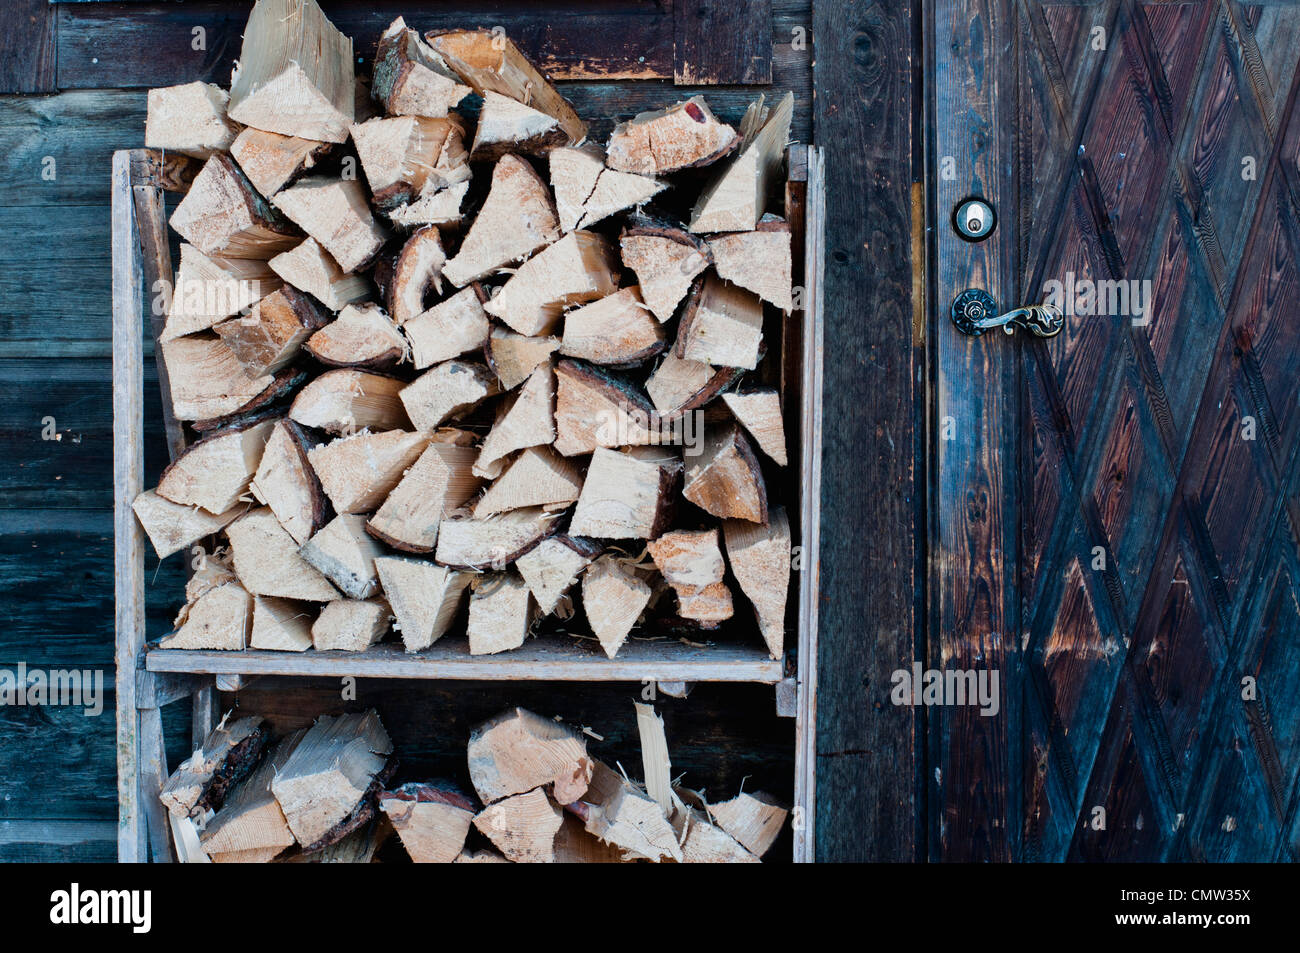 Large group of woods in shelf outside shed - Stock Image